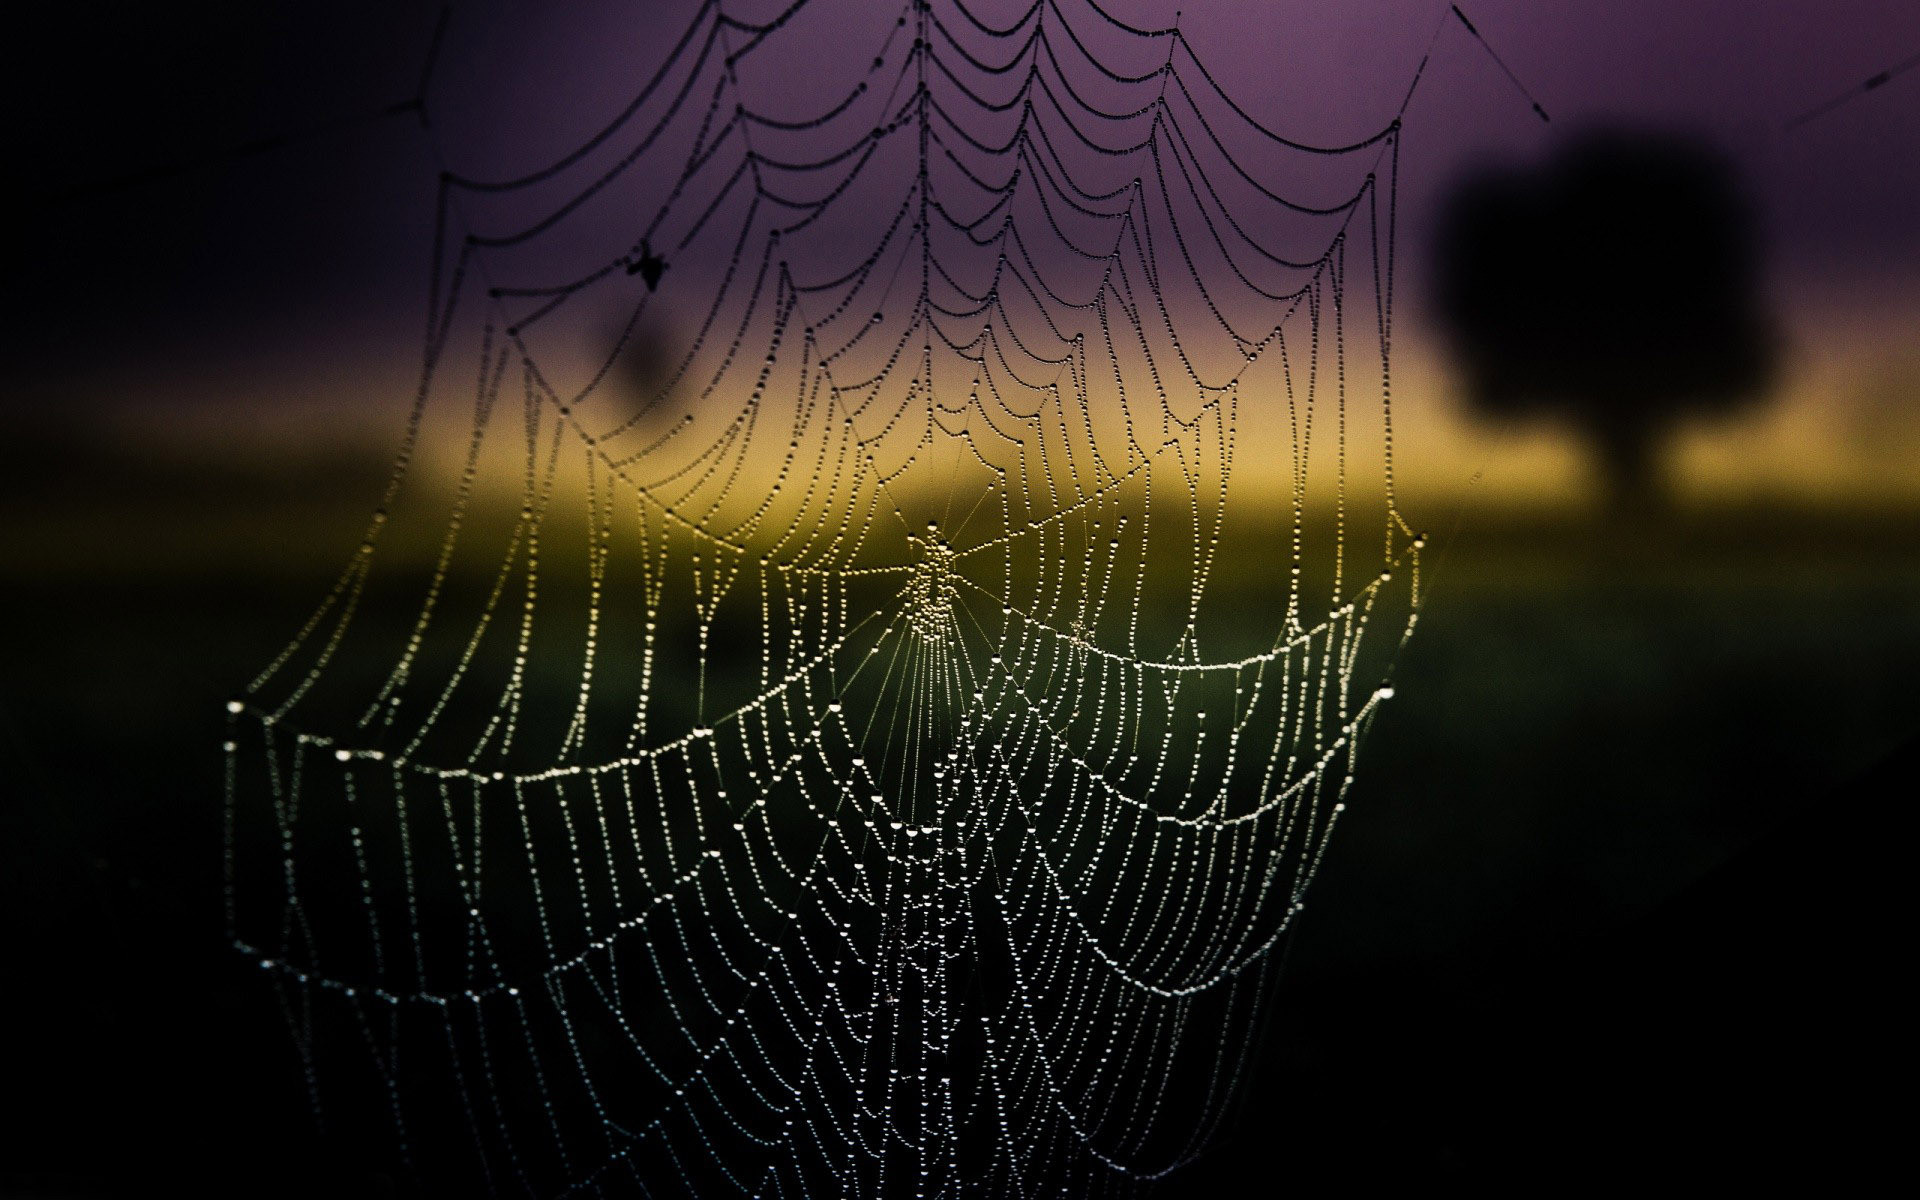 1920x1200 Amazing Spider Web Wallpaper 41576 Download HD